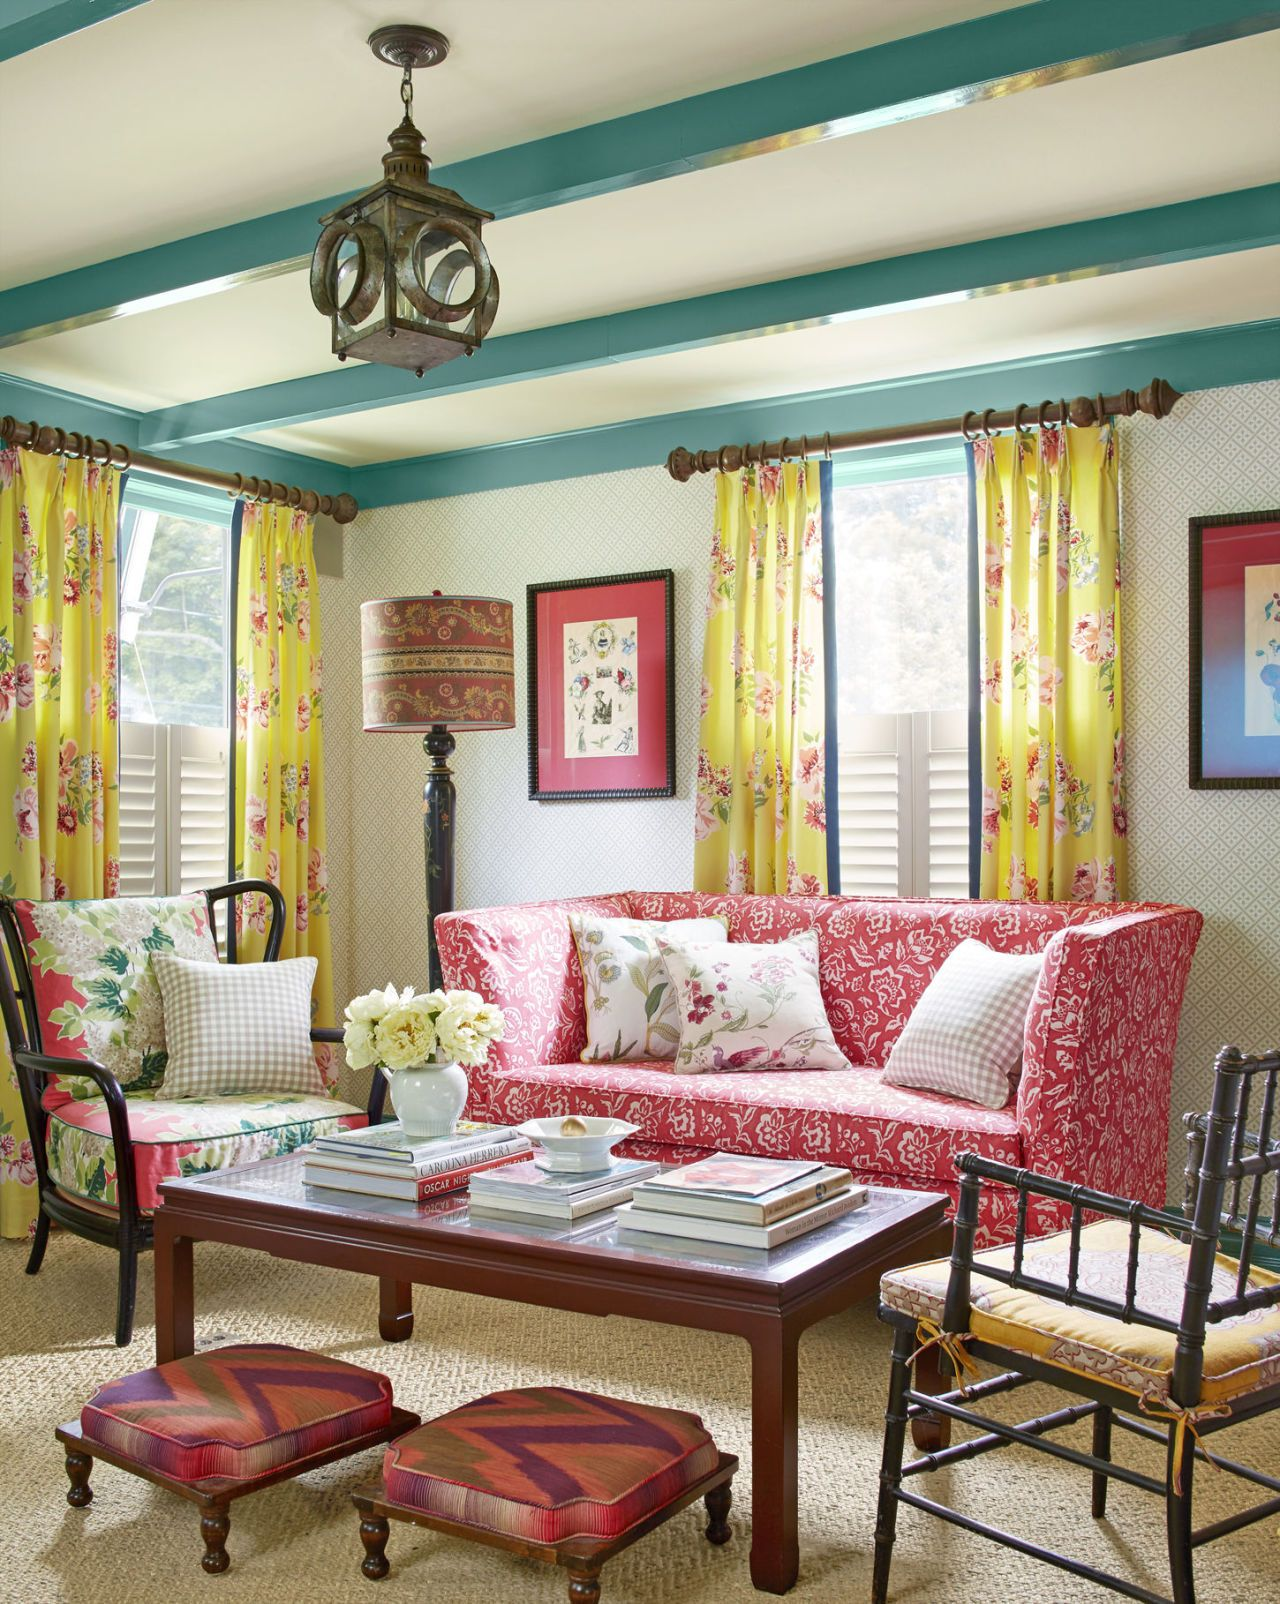 100 living room decorating ideas design photos of family roomsLiving Room Gallery #11